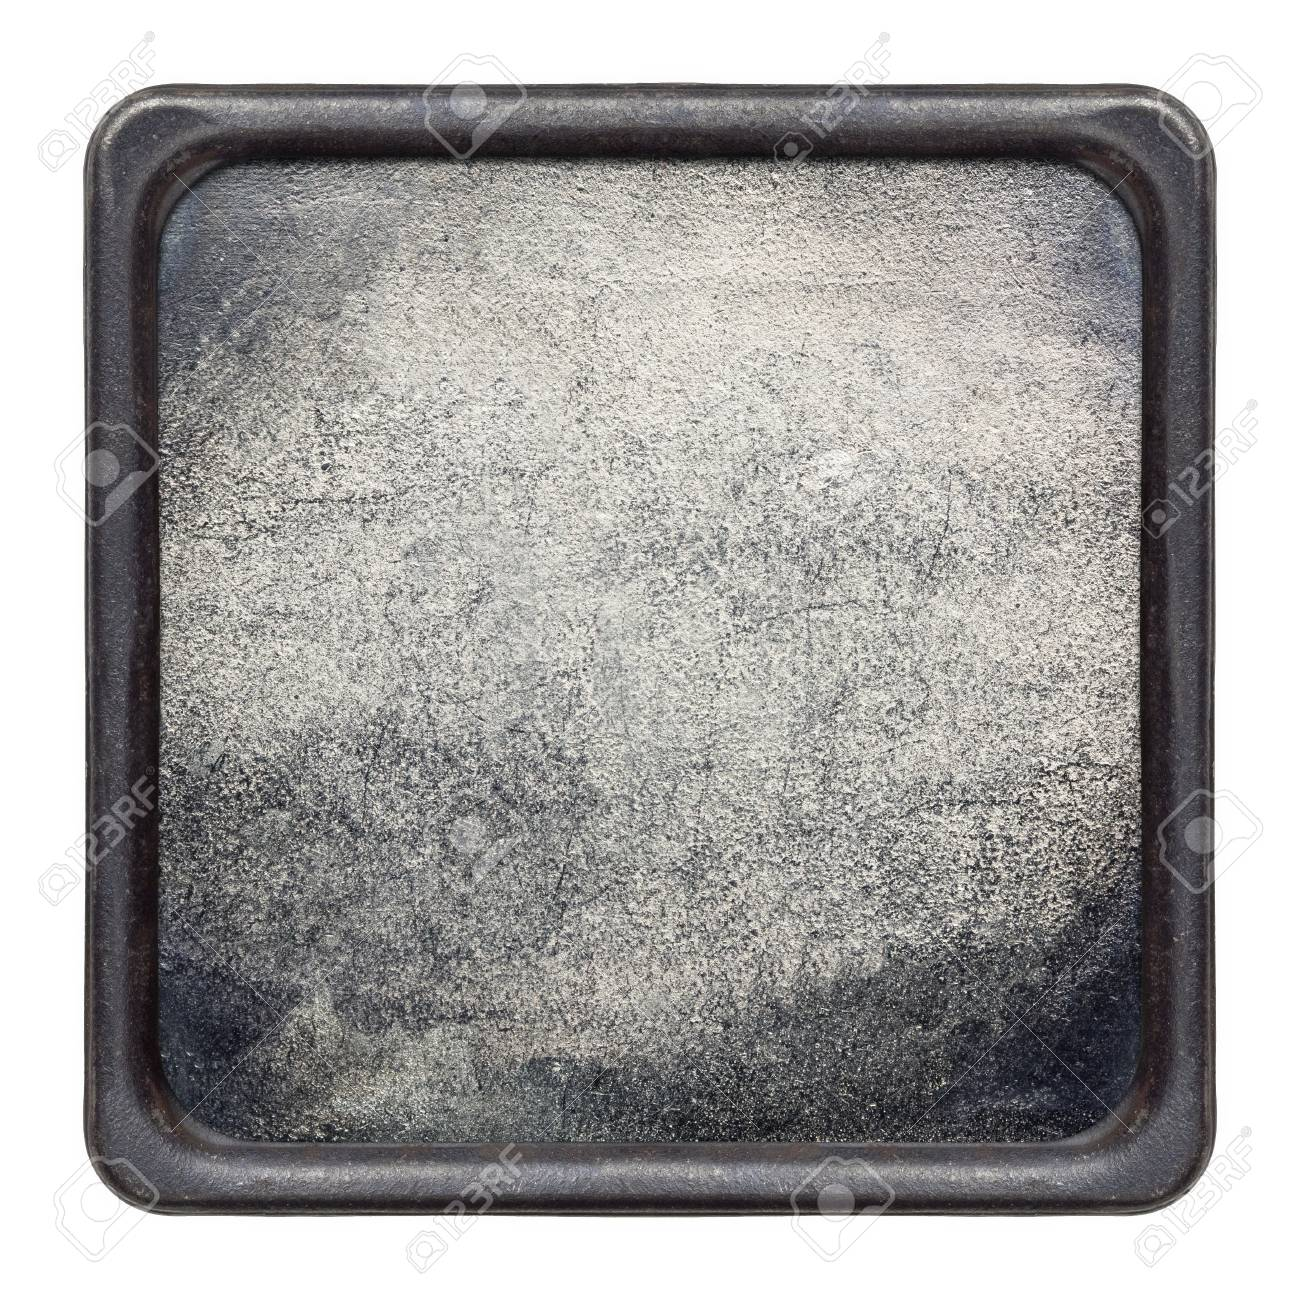 Framed metal plate texture Stock Photo - 23335572